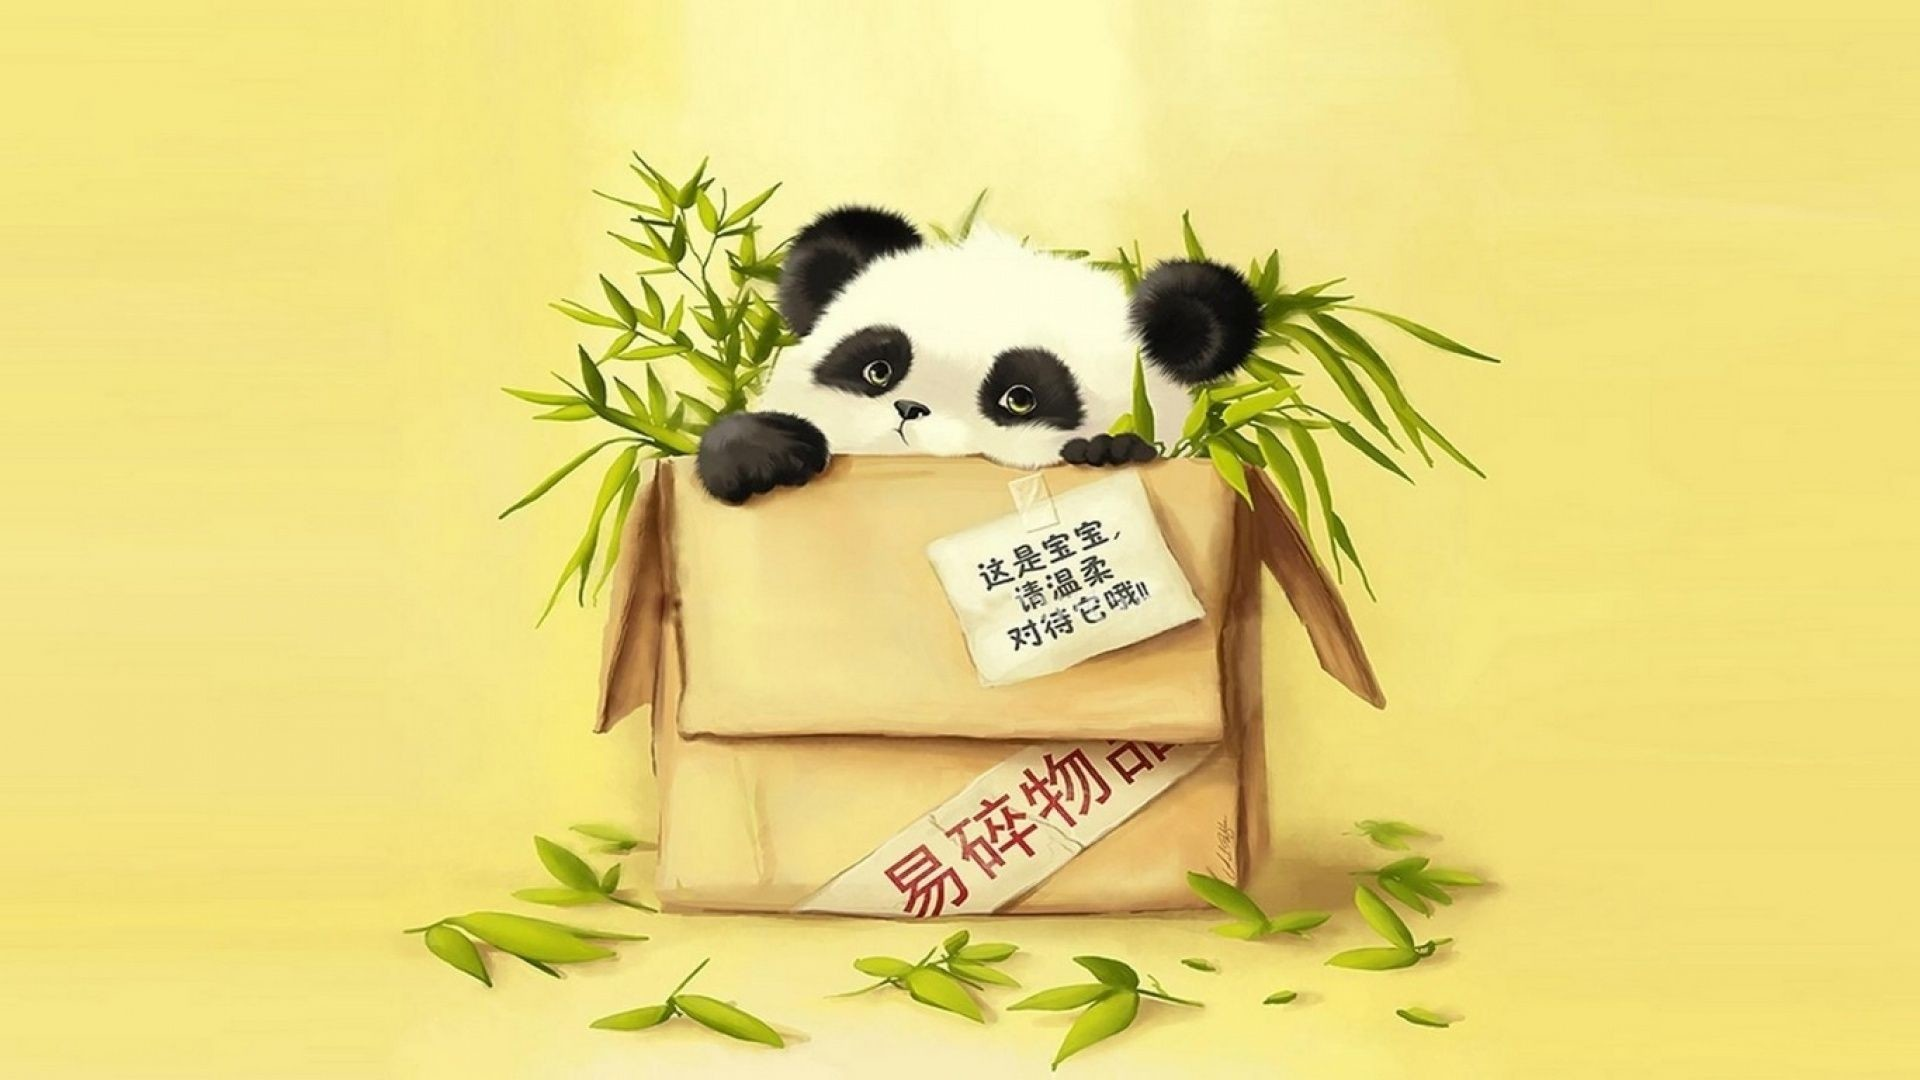 1920x1080 Funny Cute Baby Panda Wallpaper HD